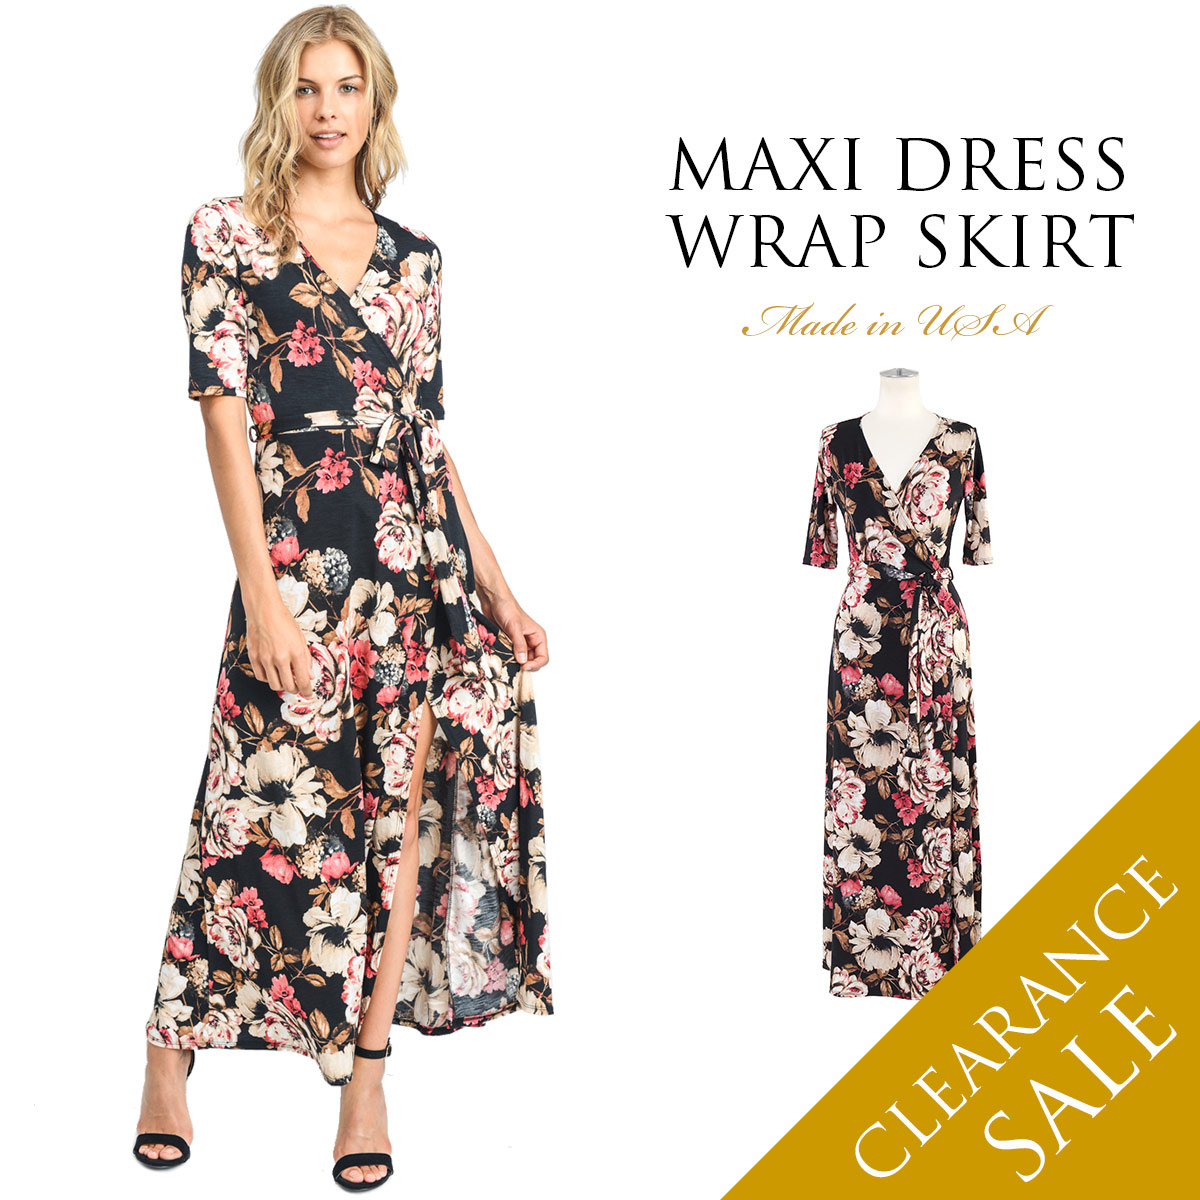 cc5c4937647 The maxi dress of the lap type. One piece that a feeling of flexible  omission is beautiful